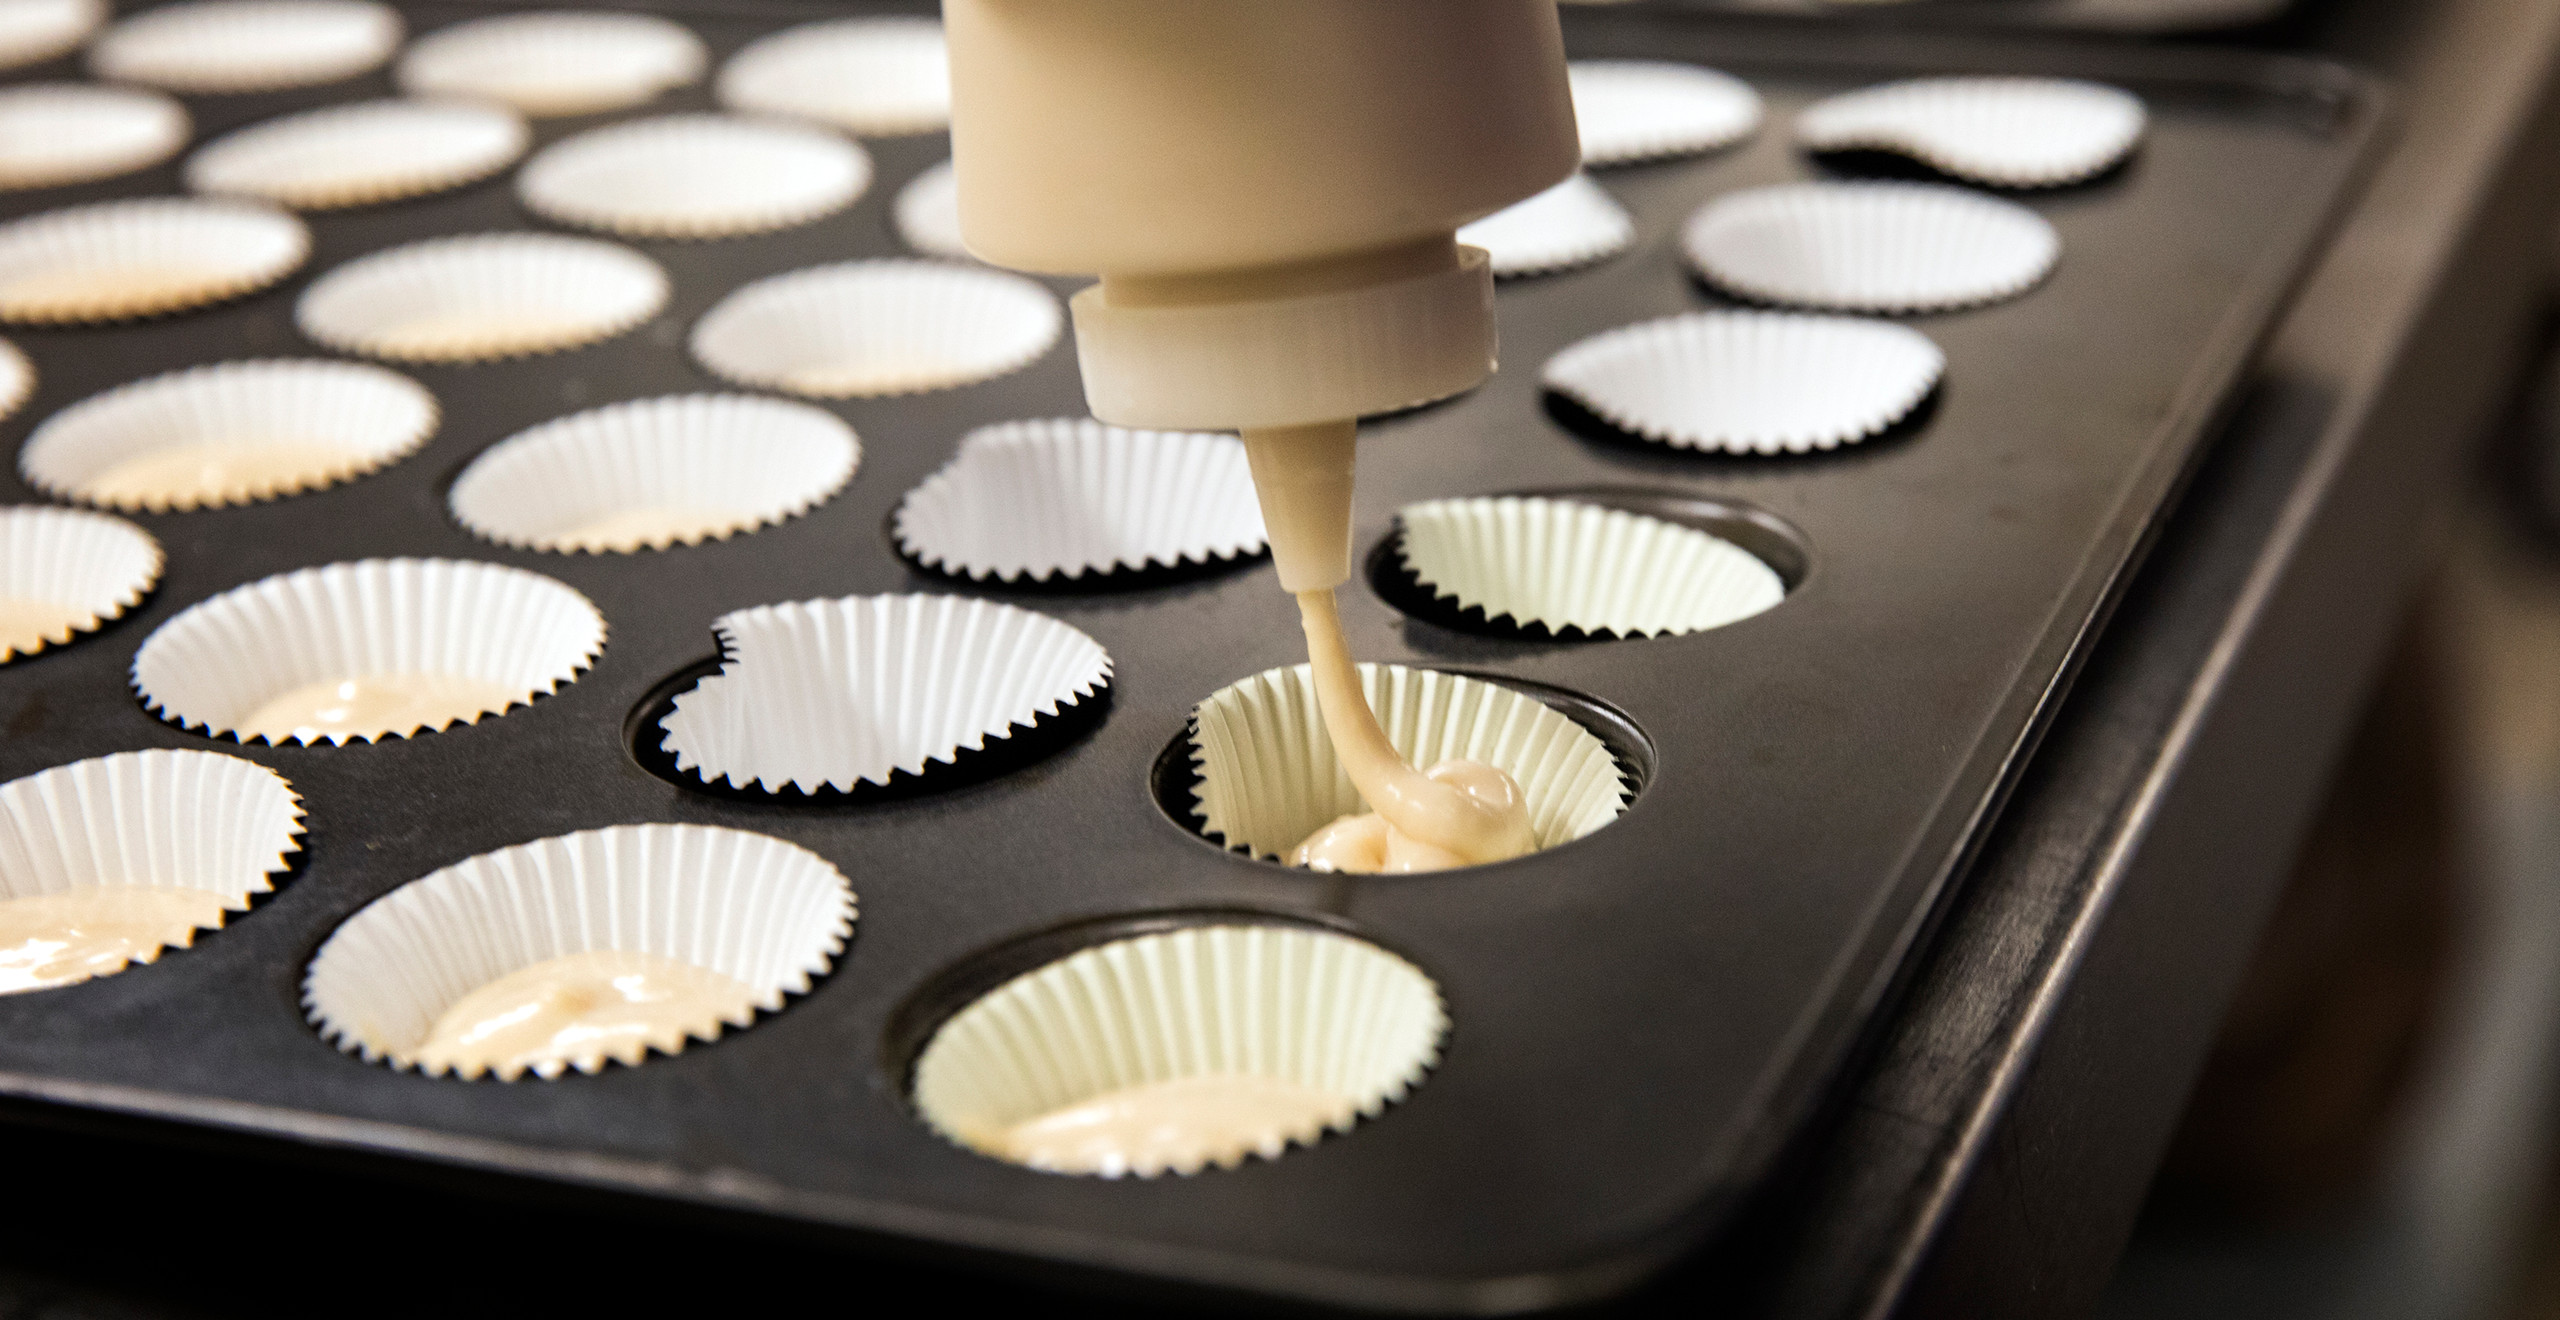 Closeup of someone squeezing cupcake batter from a plastic squirt bottle into a mini cupcake tin filled with white cupcake liners.